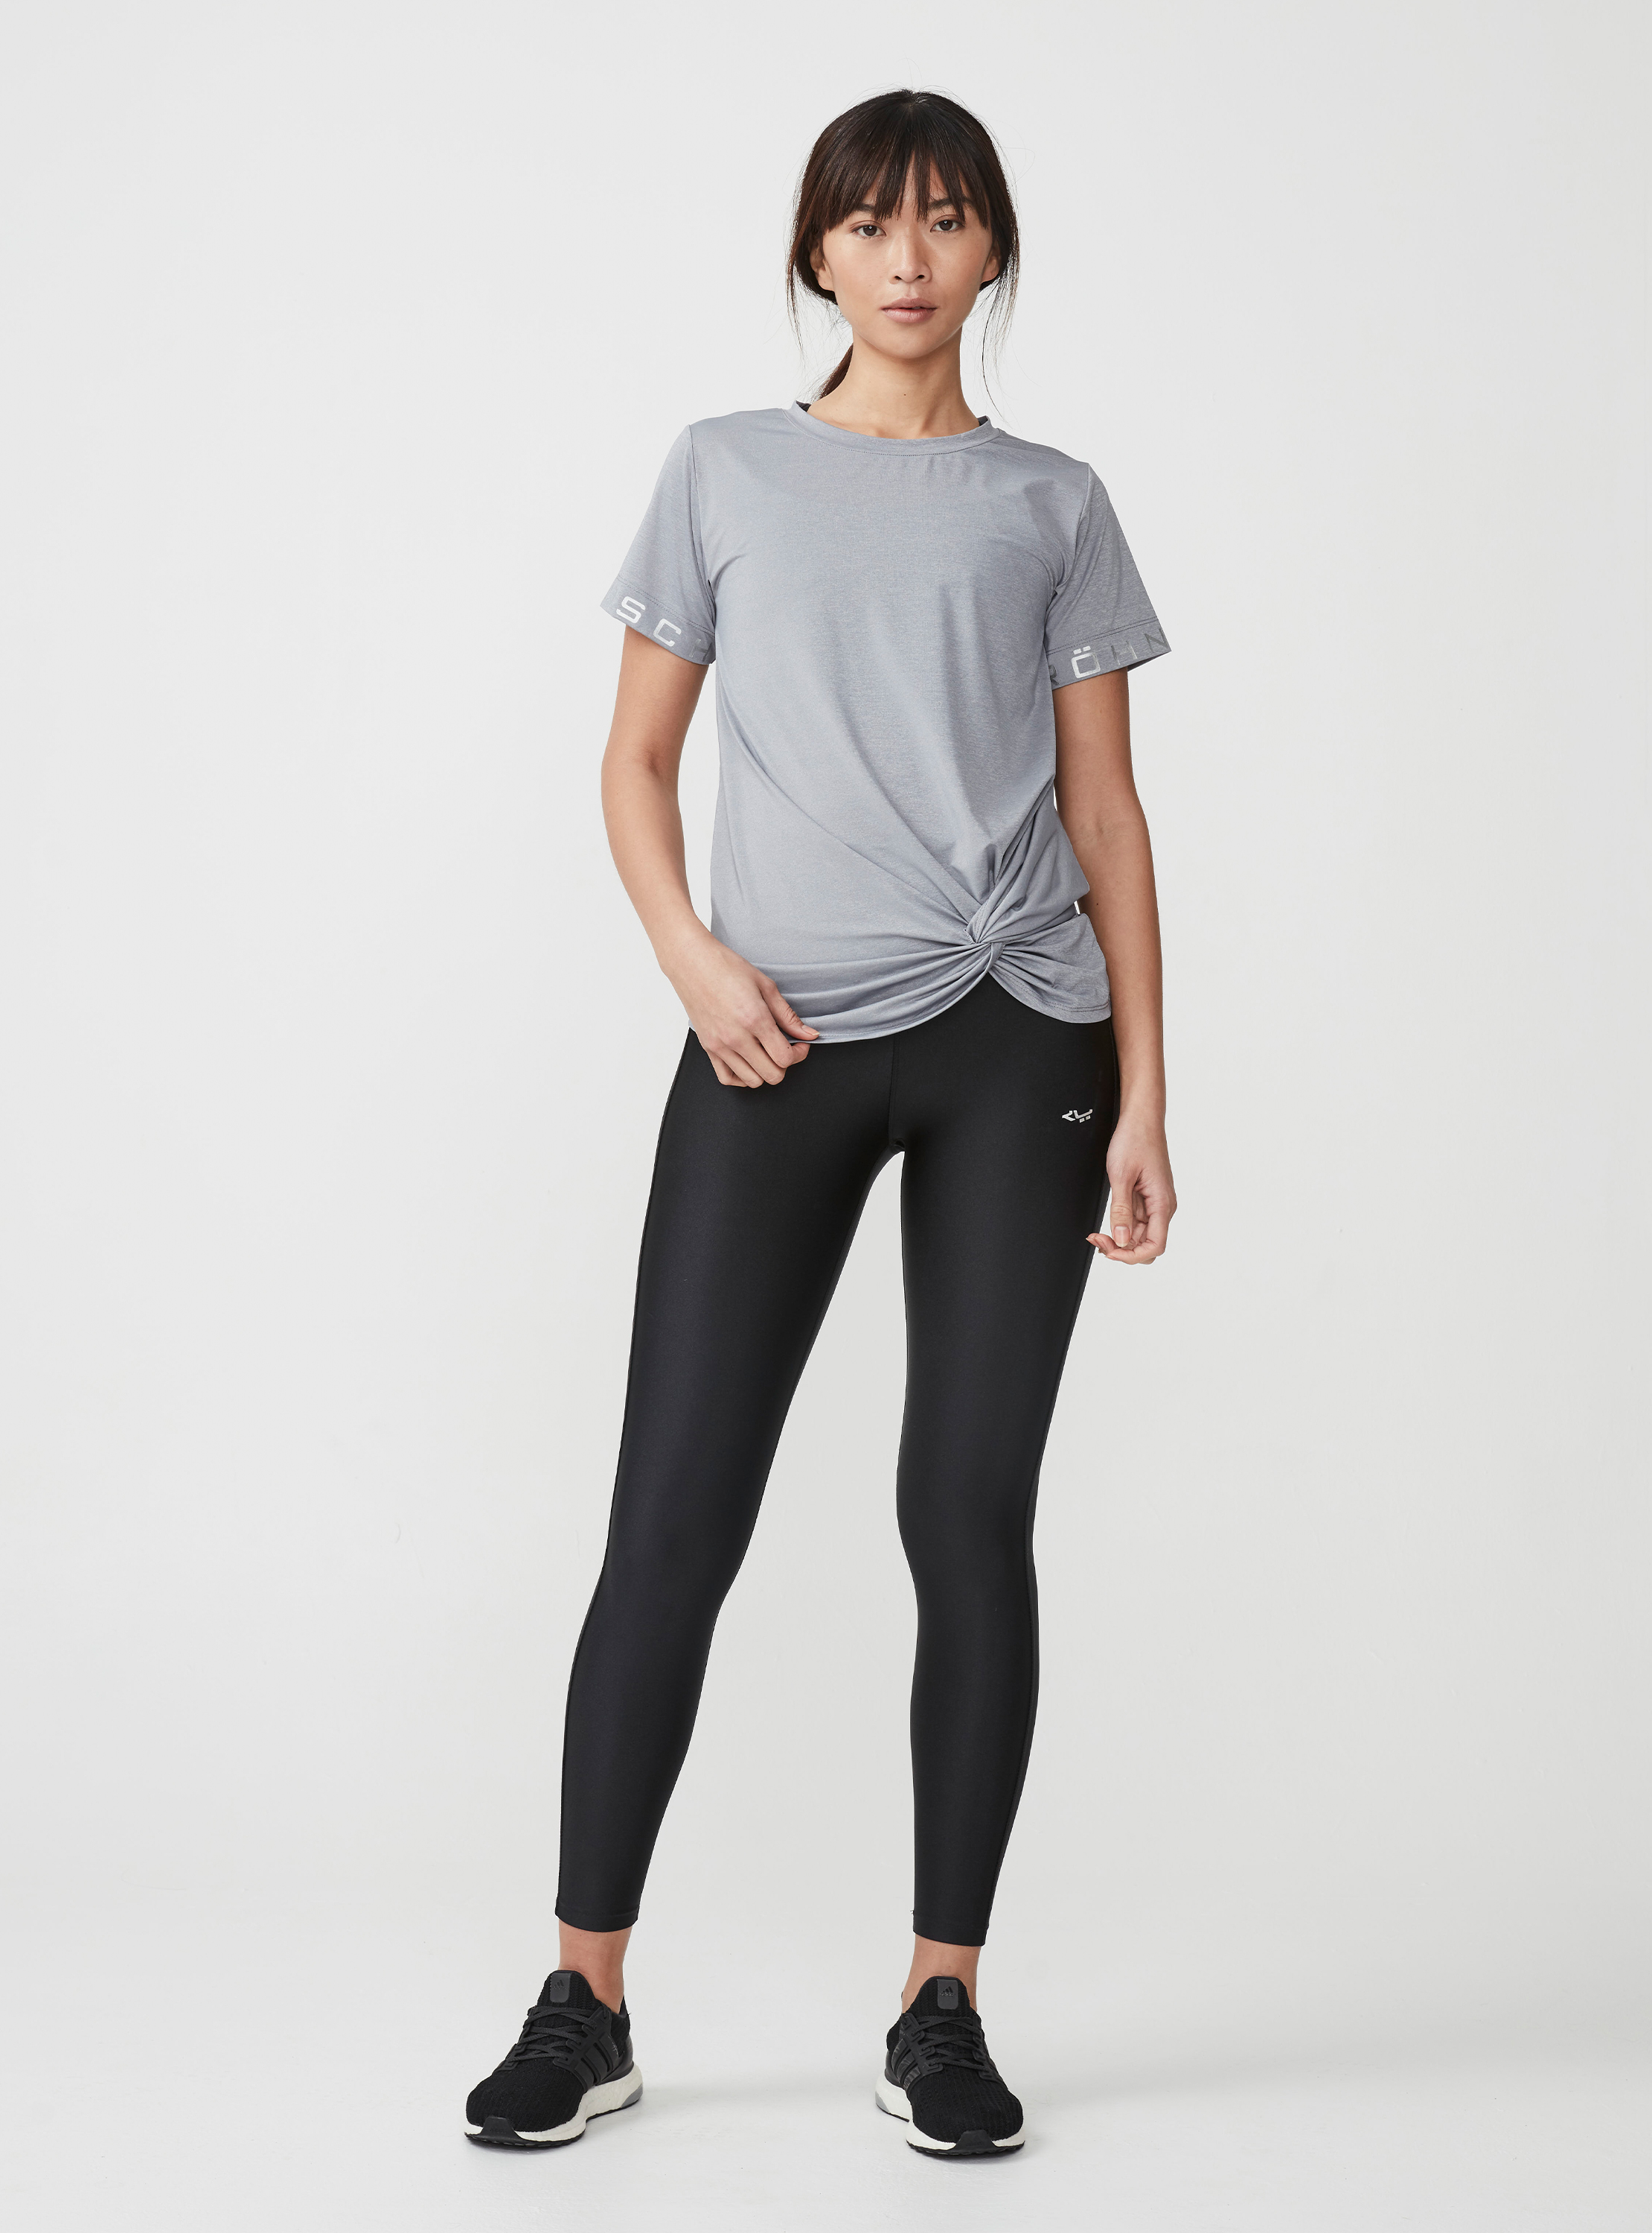 Shop the look - Knot tee, Grey